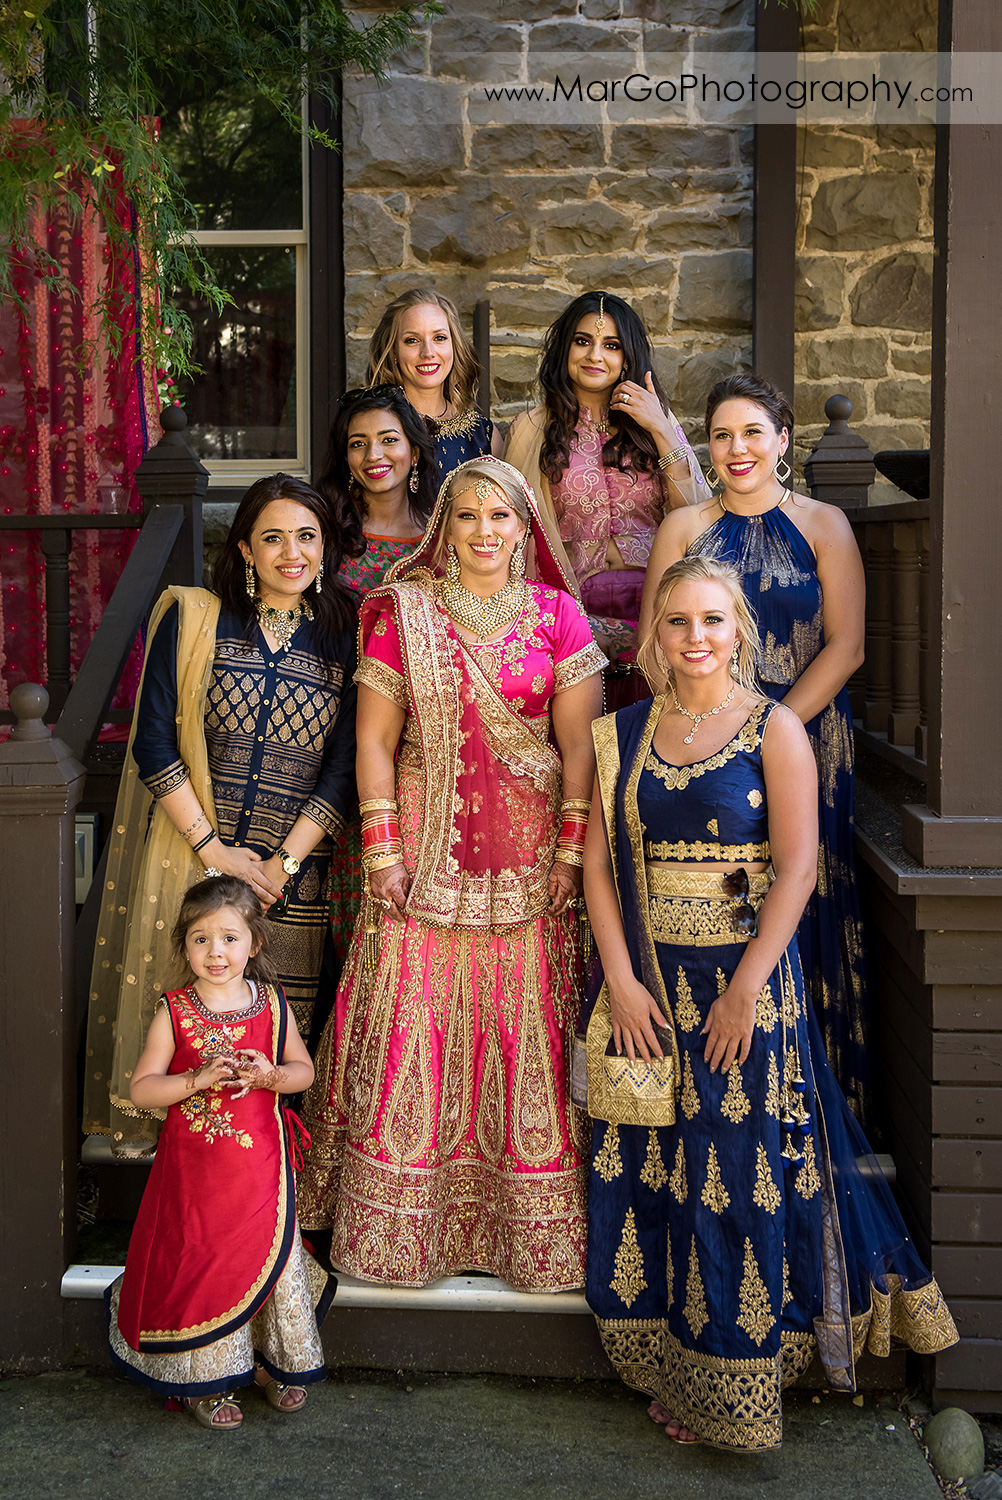 Indian bride with bridesmaids before wedding ceremony at Elliston Vineyards in Sunol